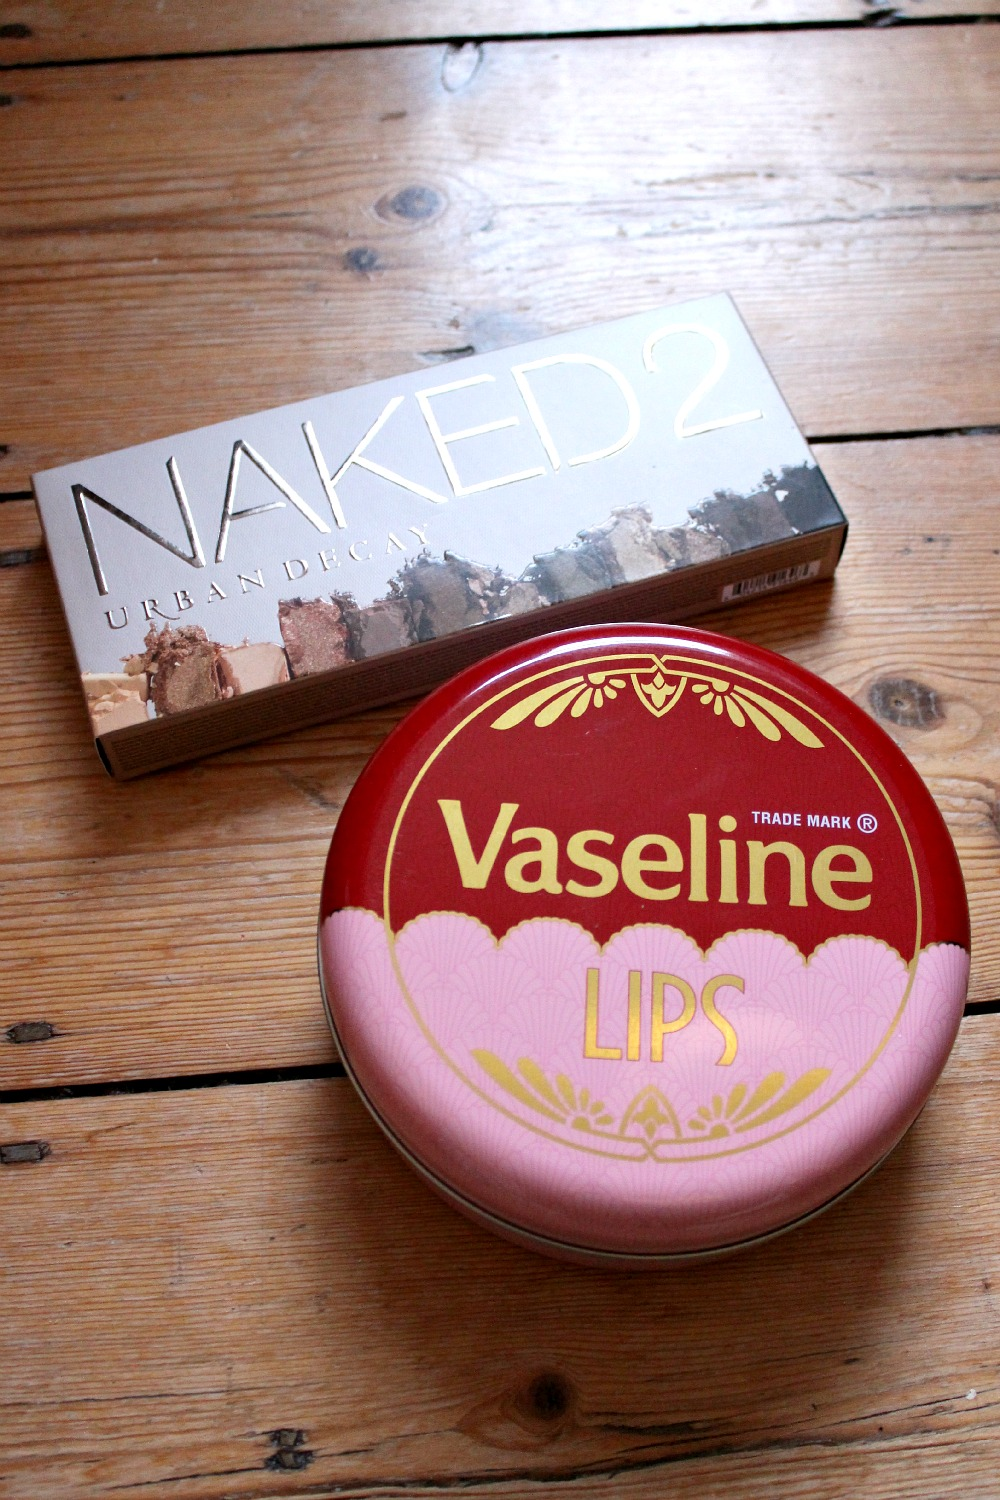 urban decay naked 2 palette and vaseline lips tin